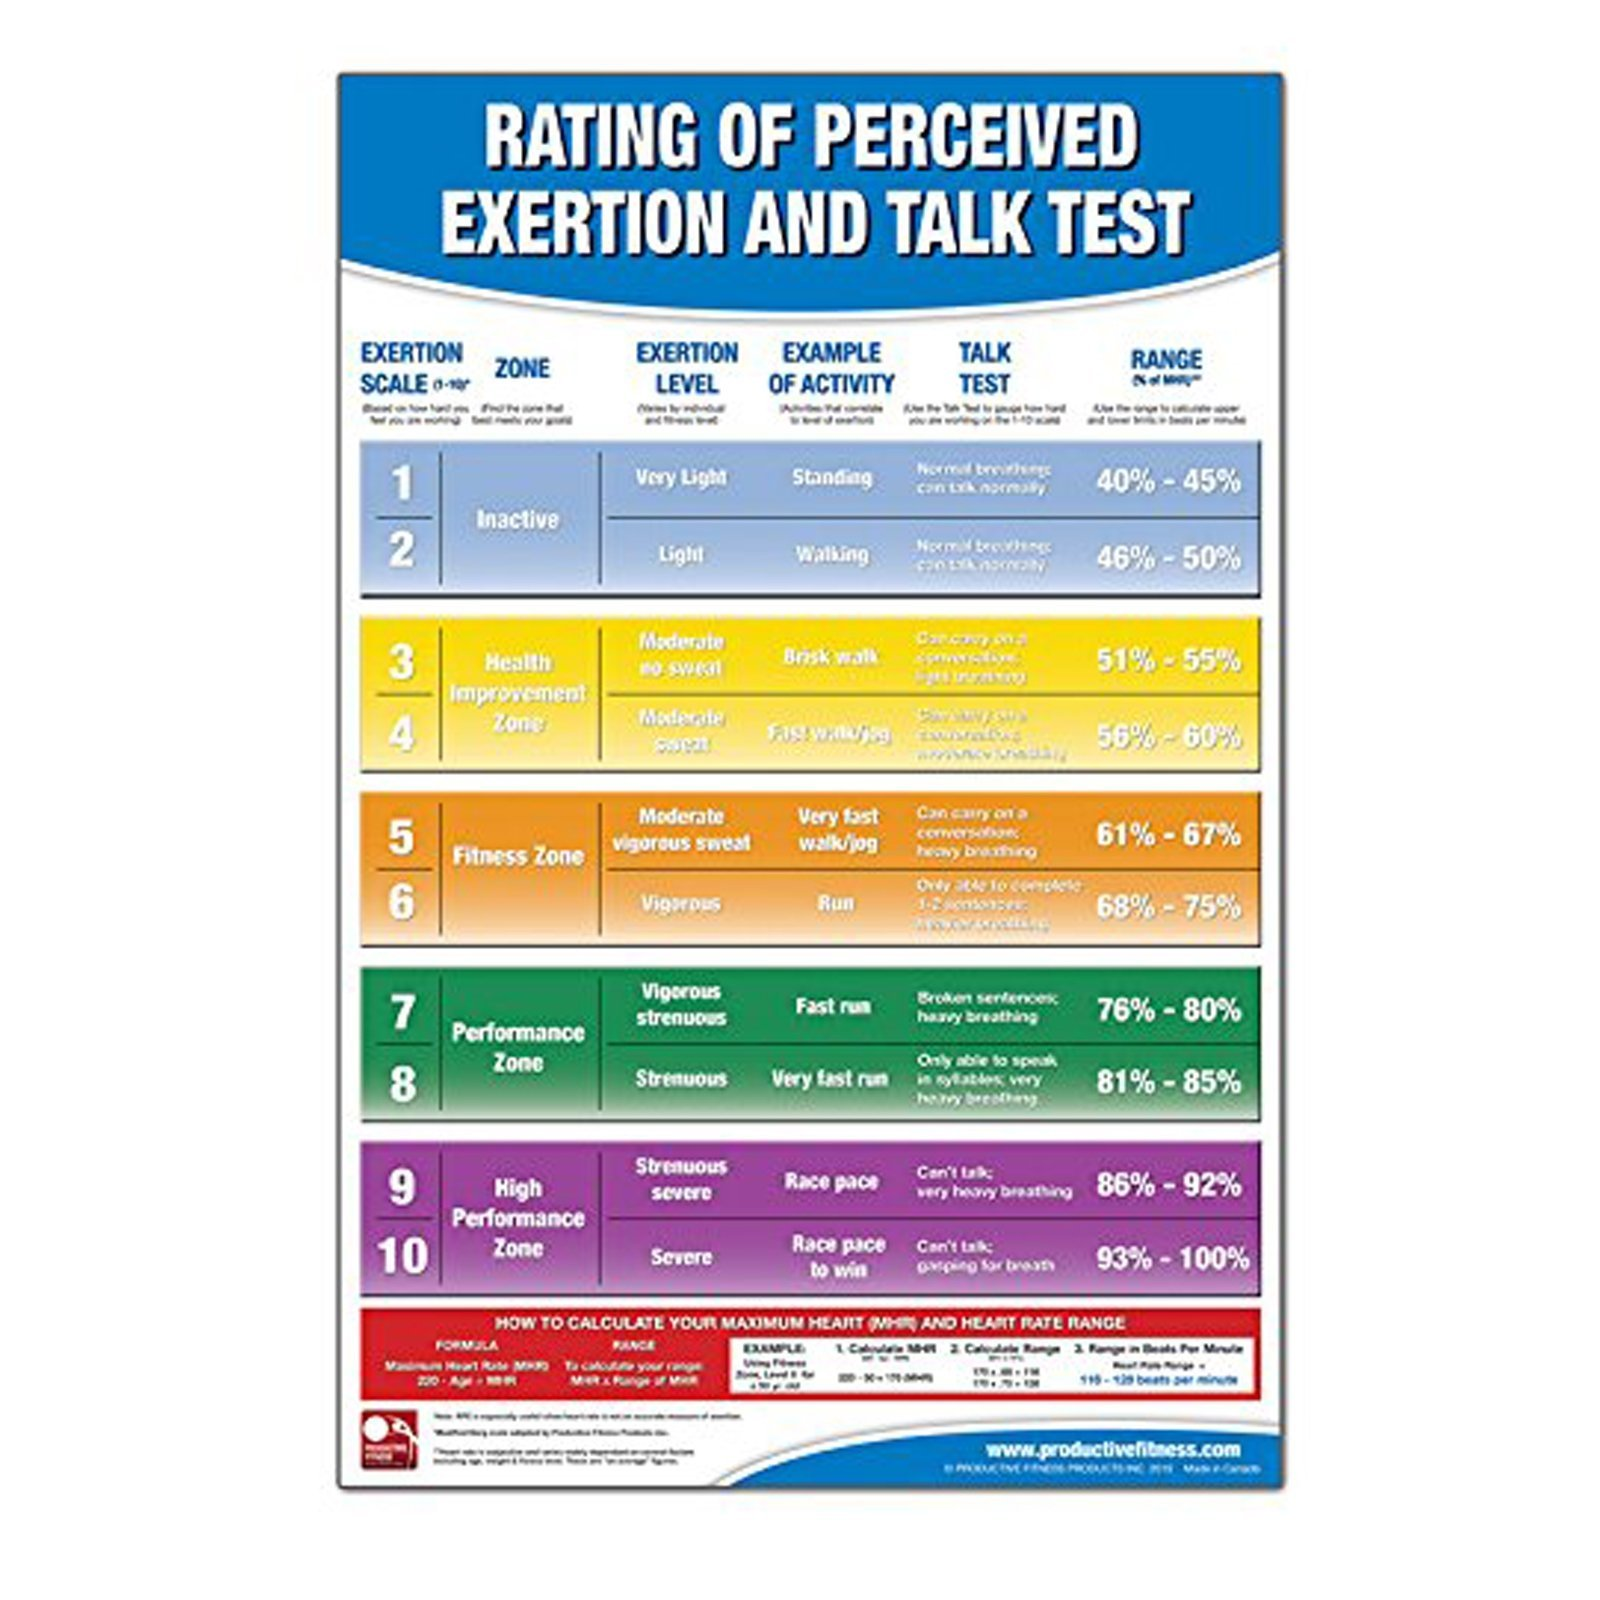 Productive Fitness and Health Instructional Poster - Exertion Level Rating Chart